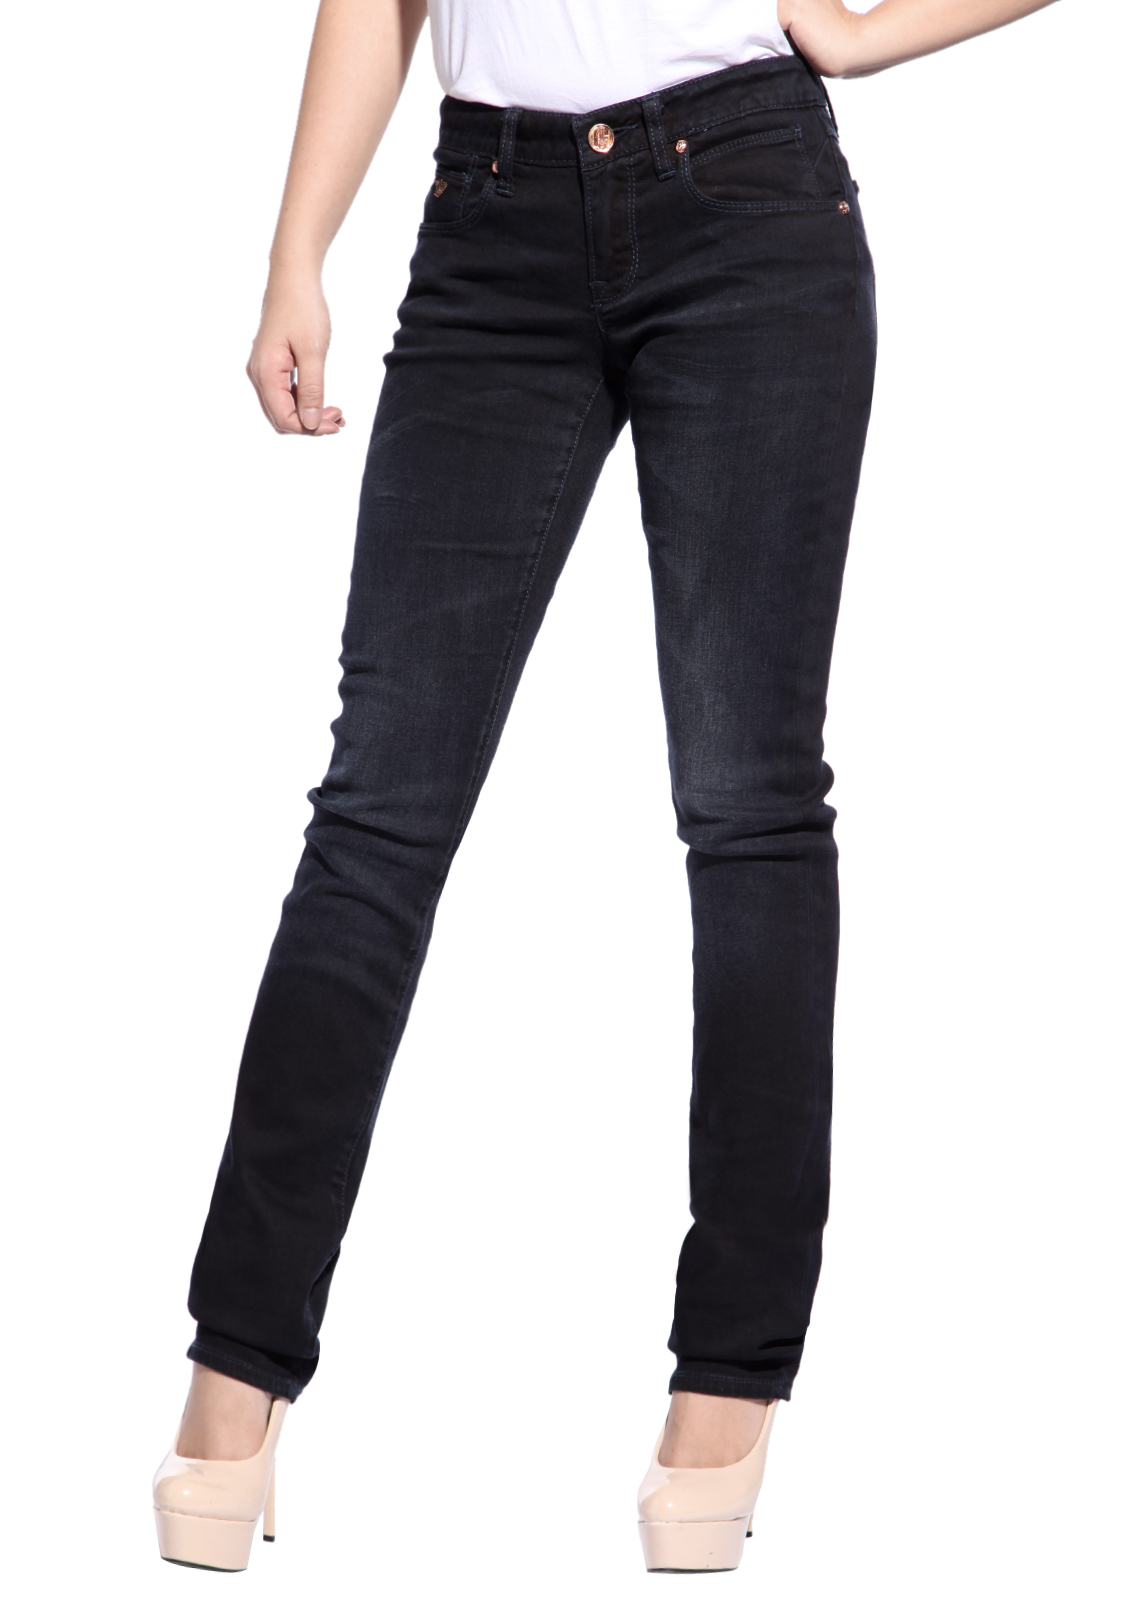 Free shipping BOTH ways on Jeans, Women, Slim Fit, from our vast selection of styles. Fast delivery, and 24/7/ real-person service with a smile. Click or call